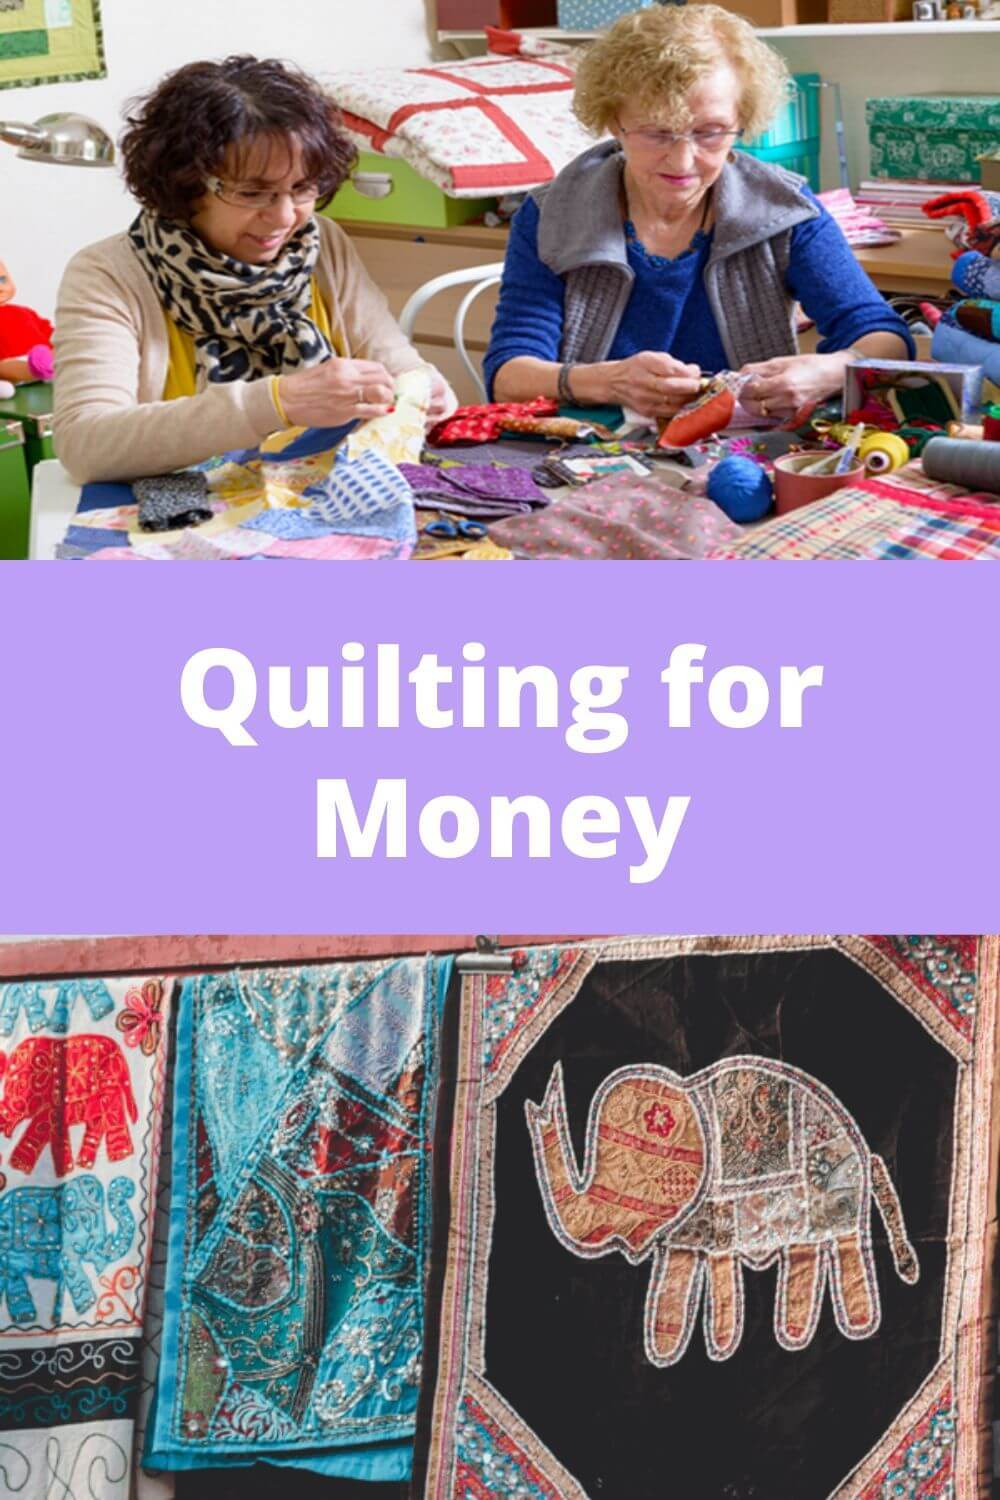 Quilting for Money